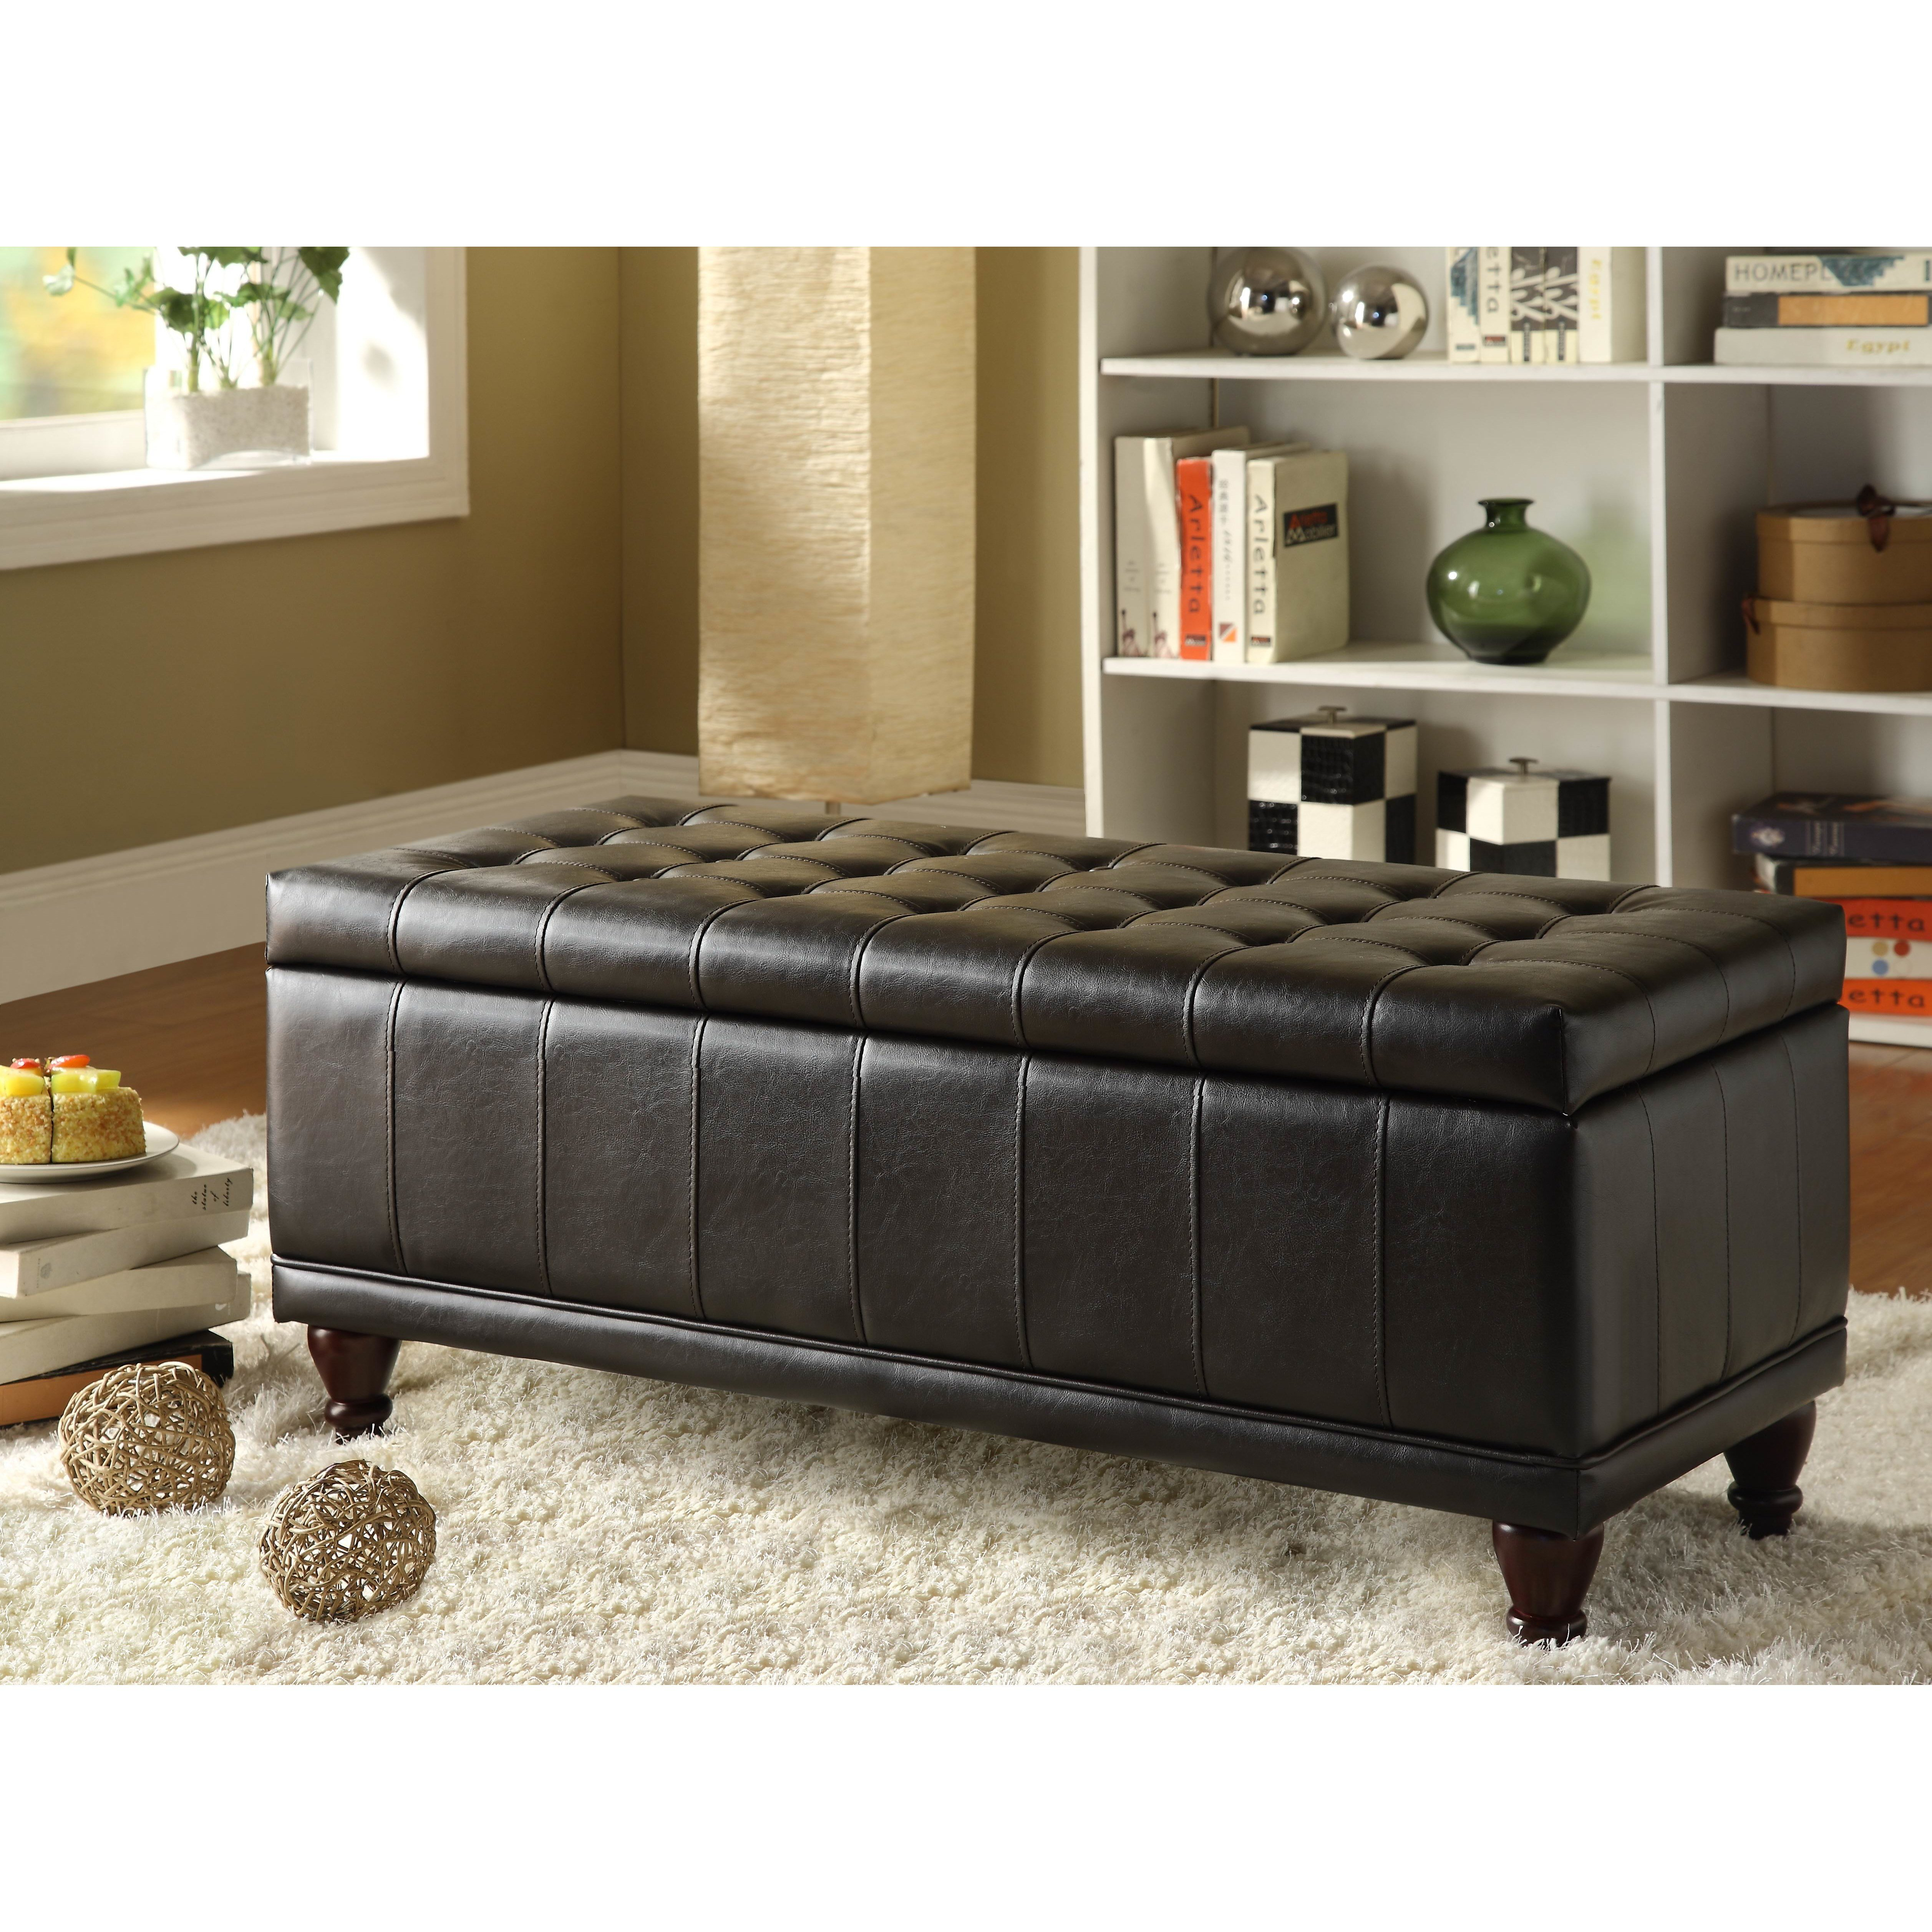 Best Darby Home Co Attles Bi Cast Vinyl Bedroom Storage Ottoman Reviews Wayfair Ca With Pictures